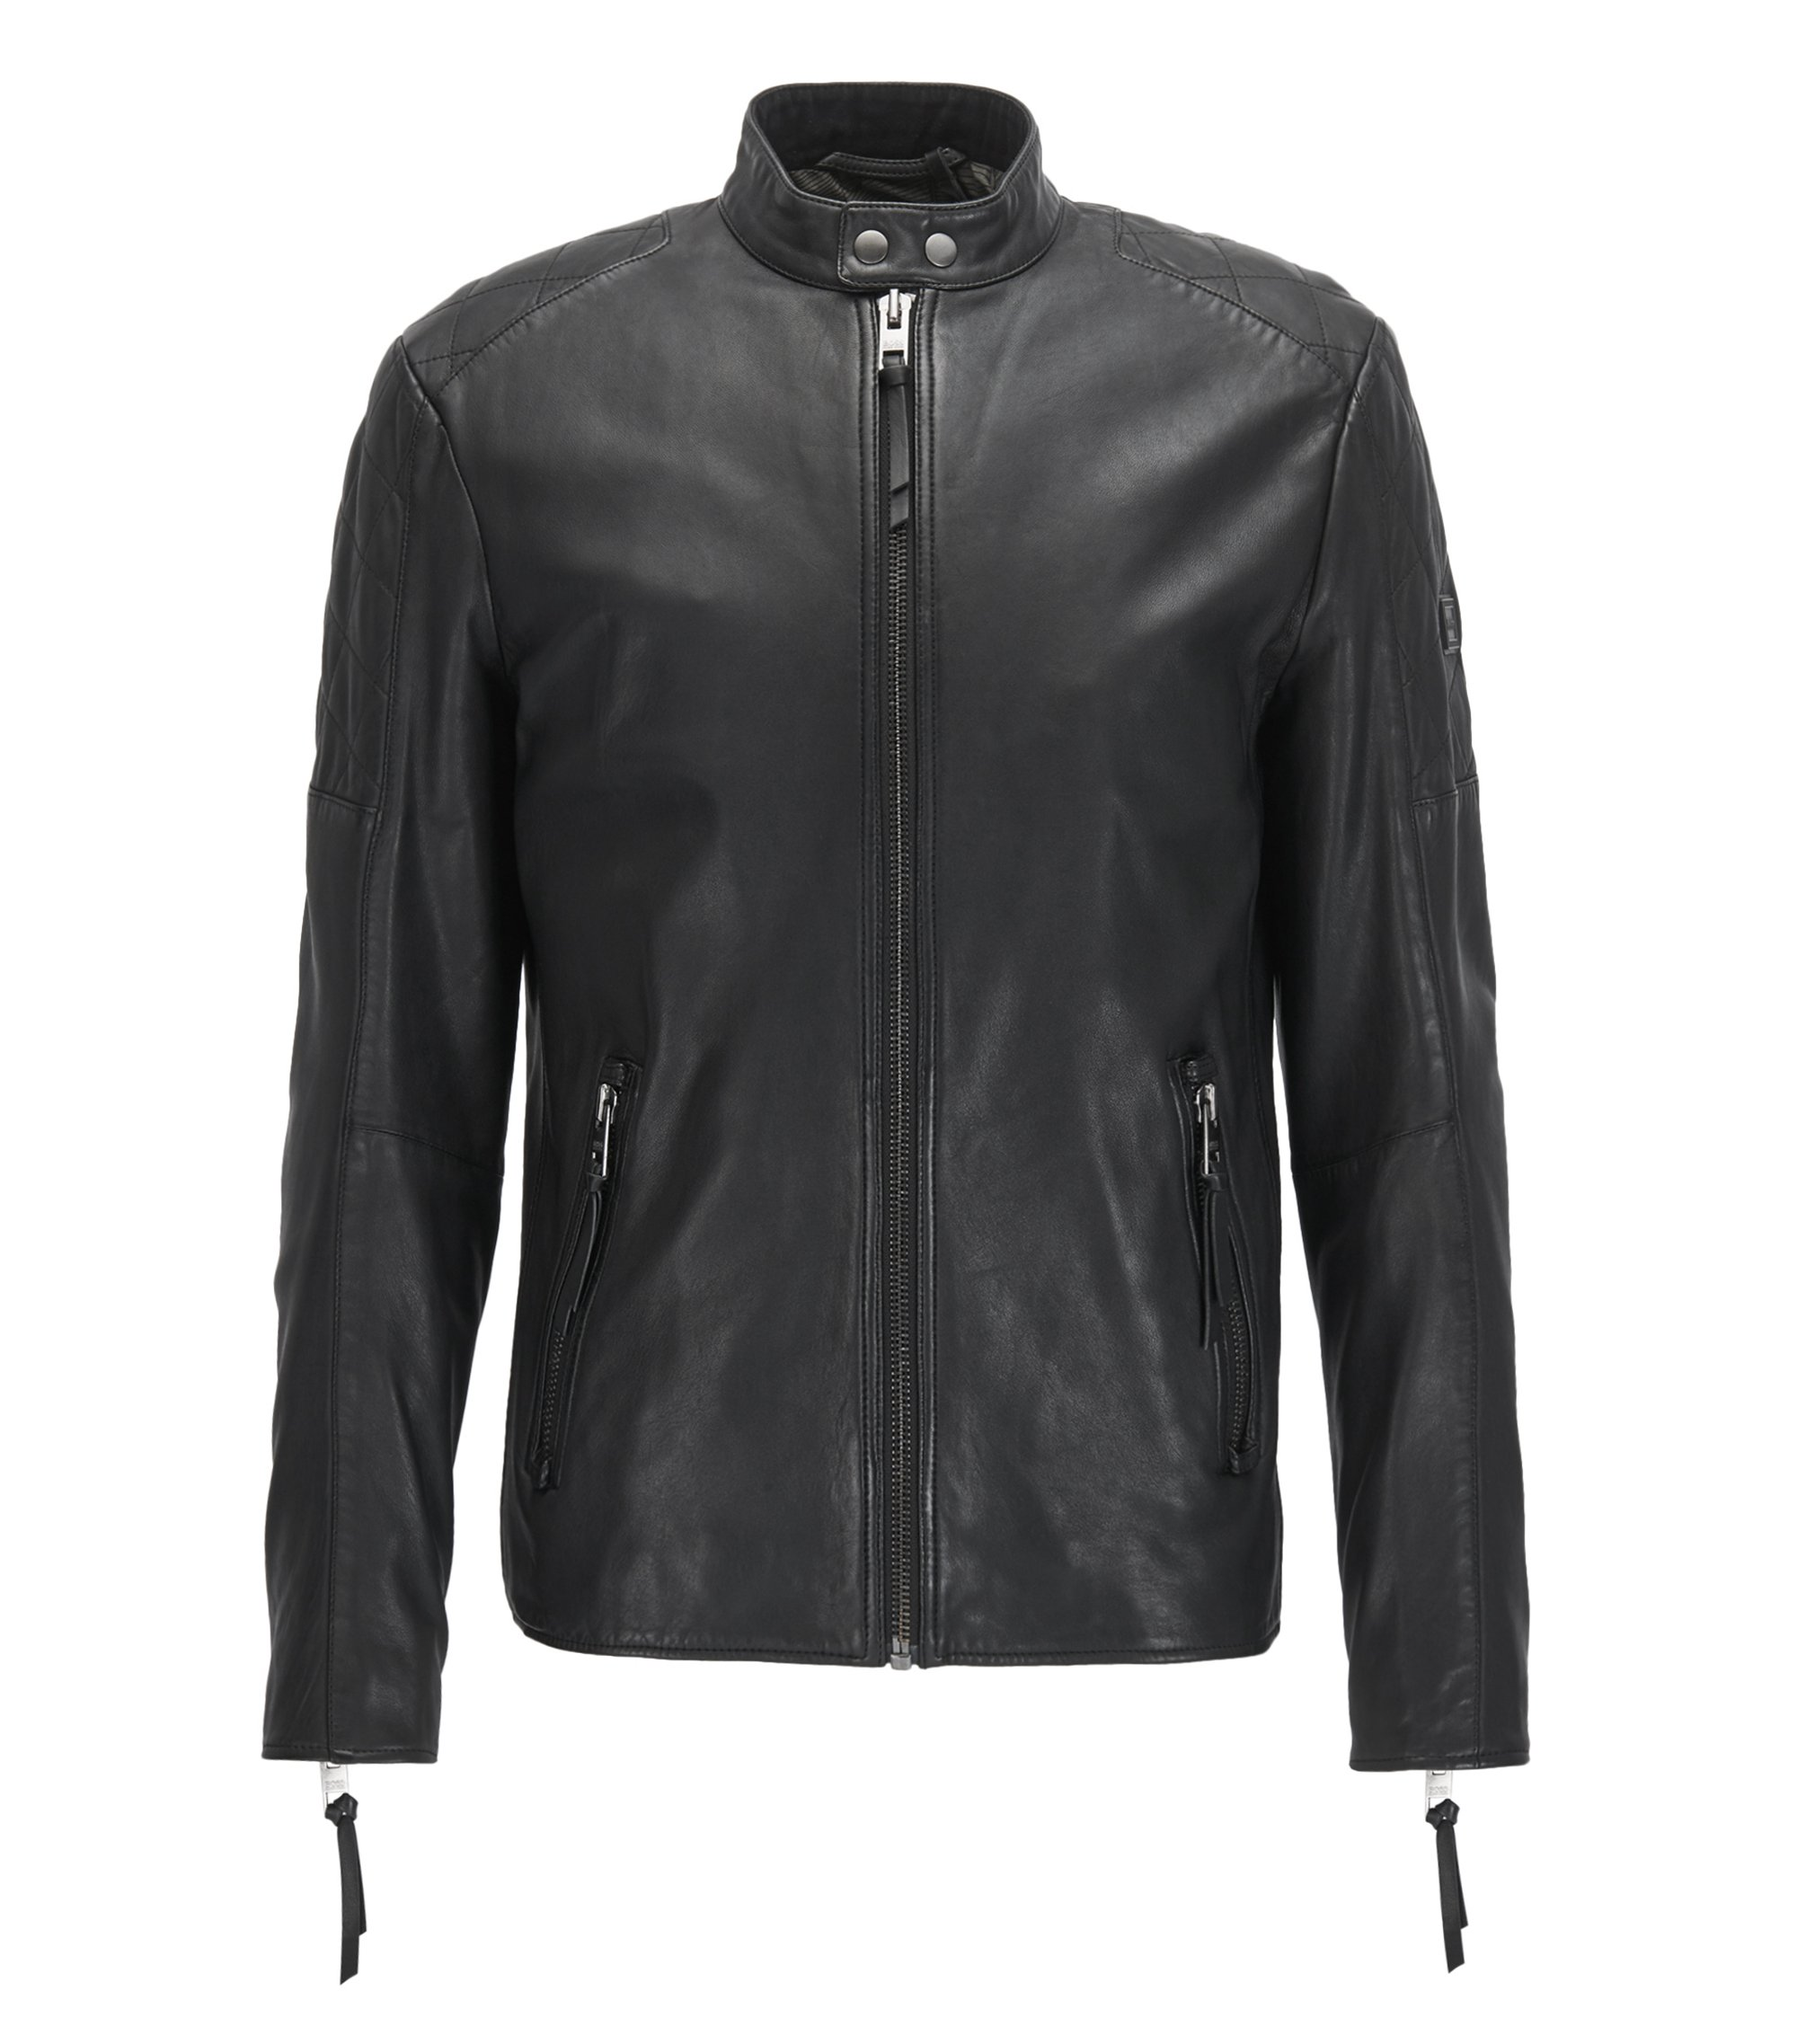 Sheepskin Leather Jacket | Jeepo, Black